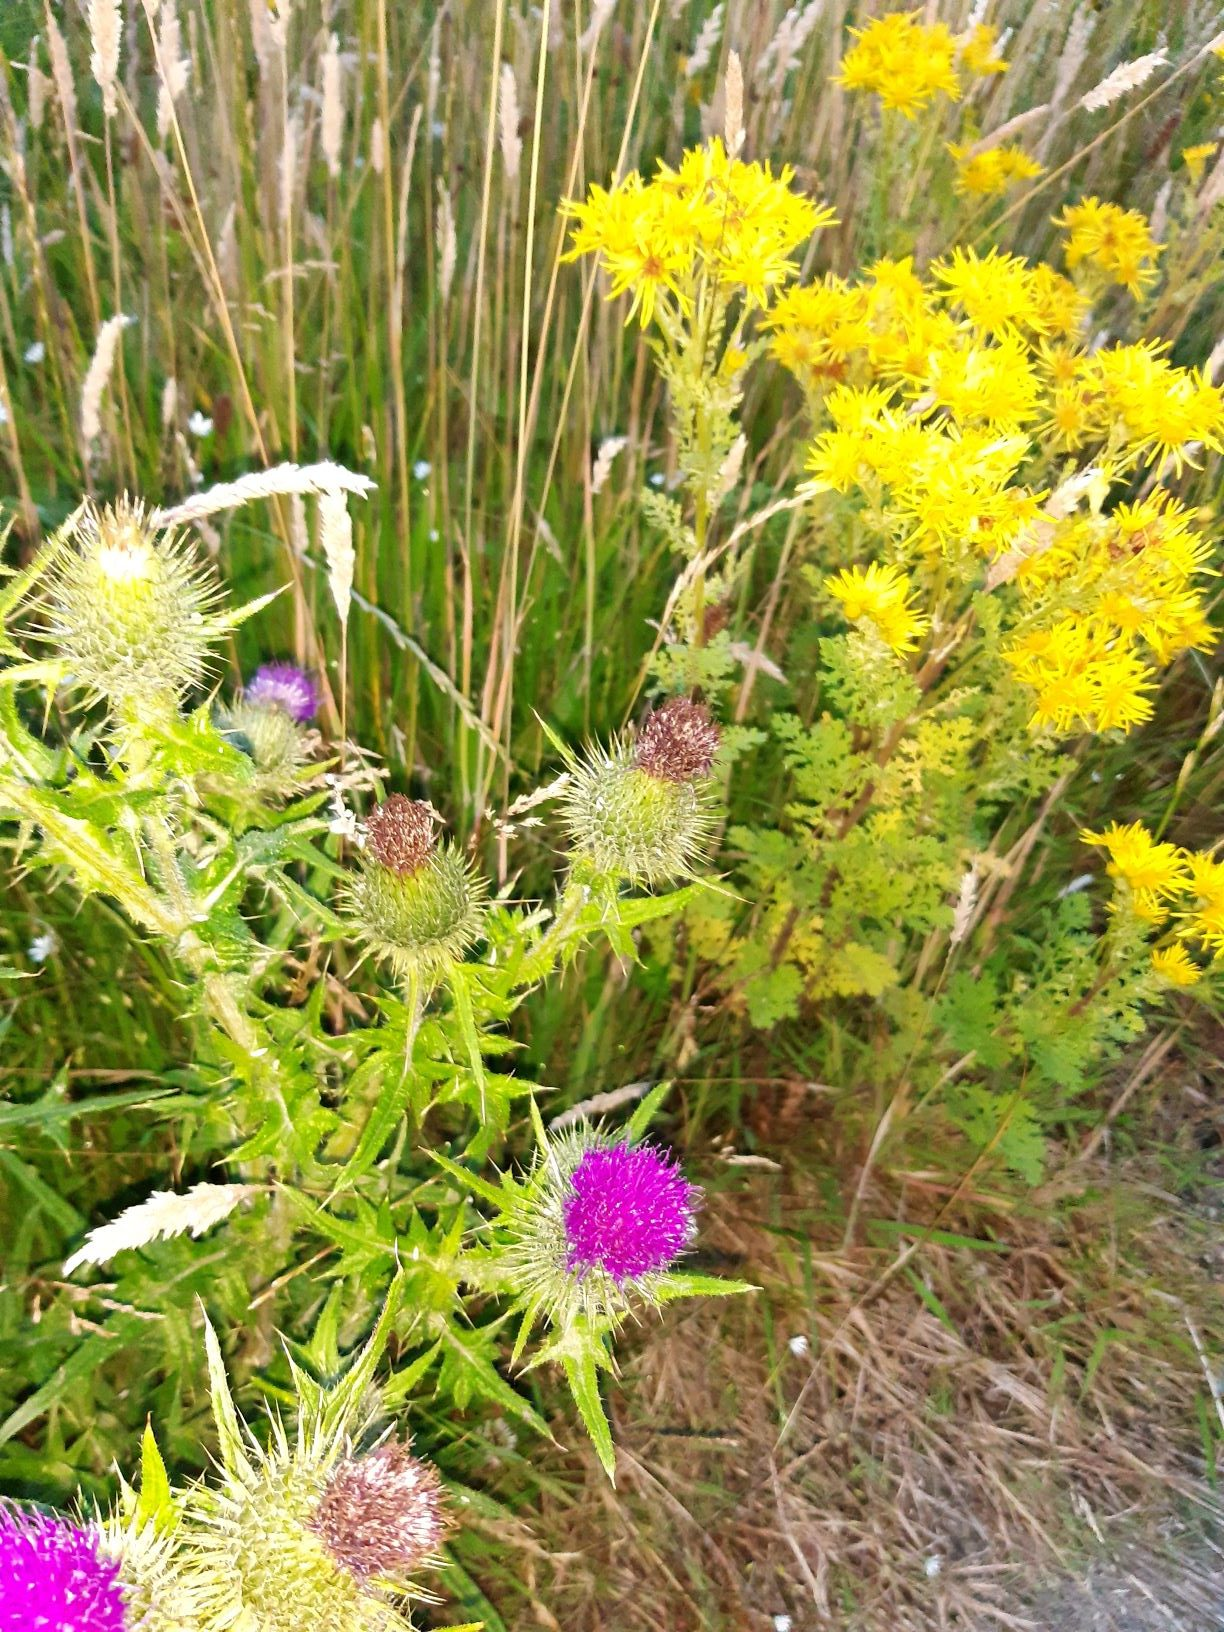 The image shows a thistle plant, with spiky leaves and flowers, topped by purple tufts. Behind it is another plant with light yellow flowers.